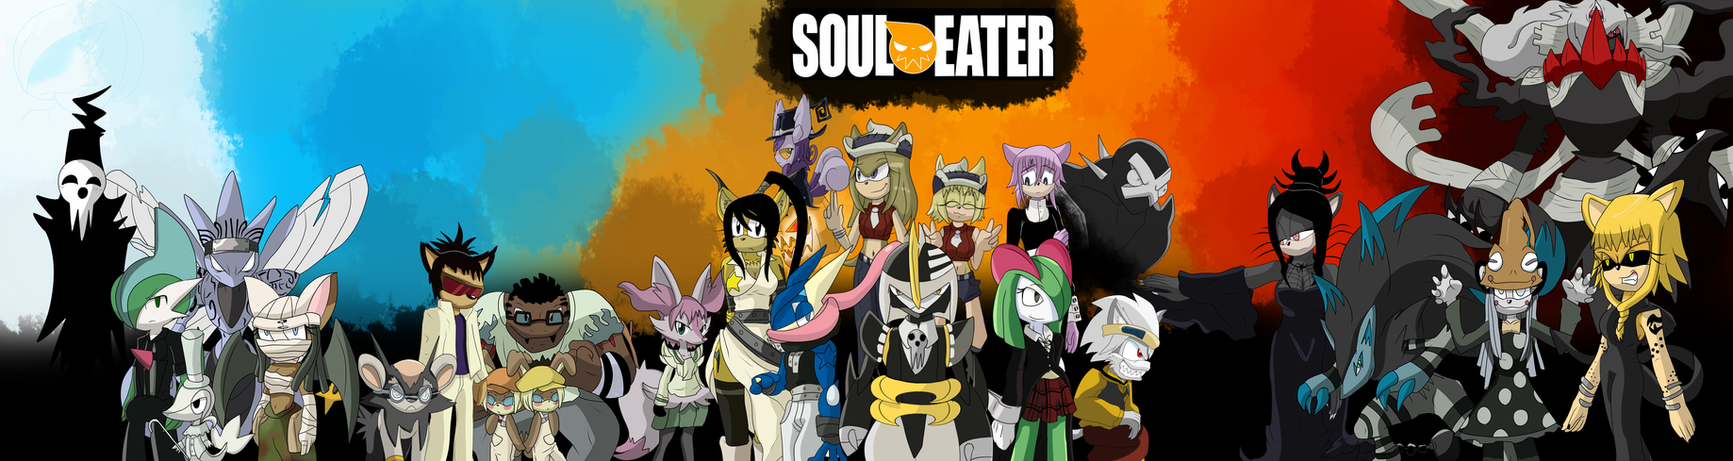 Soul Eater O.C reboot Completed!!! by ColorDrake